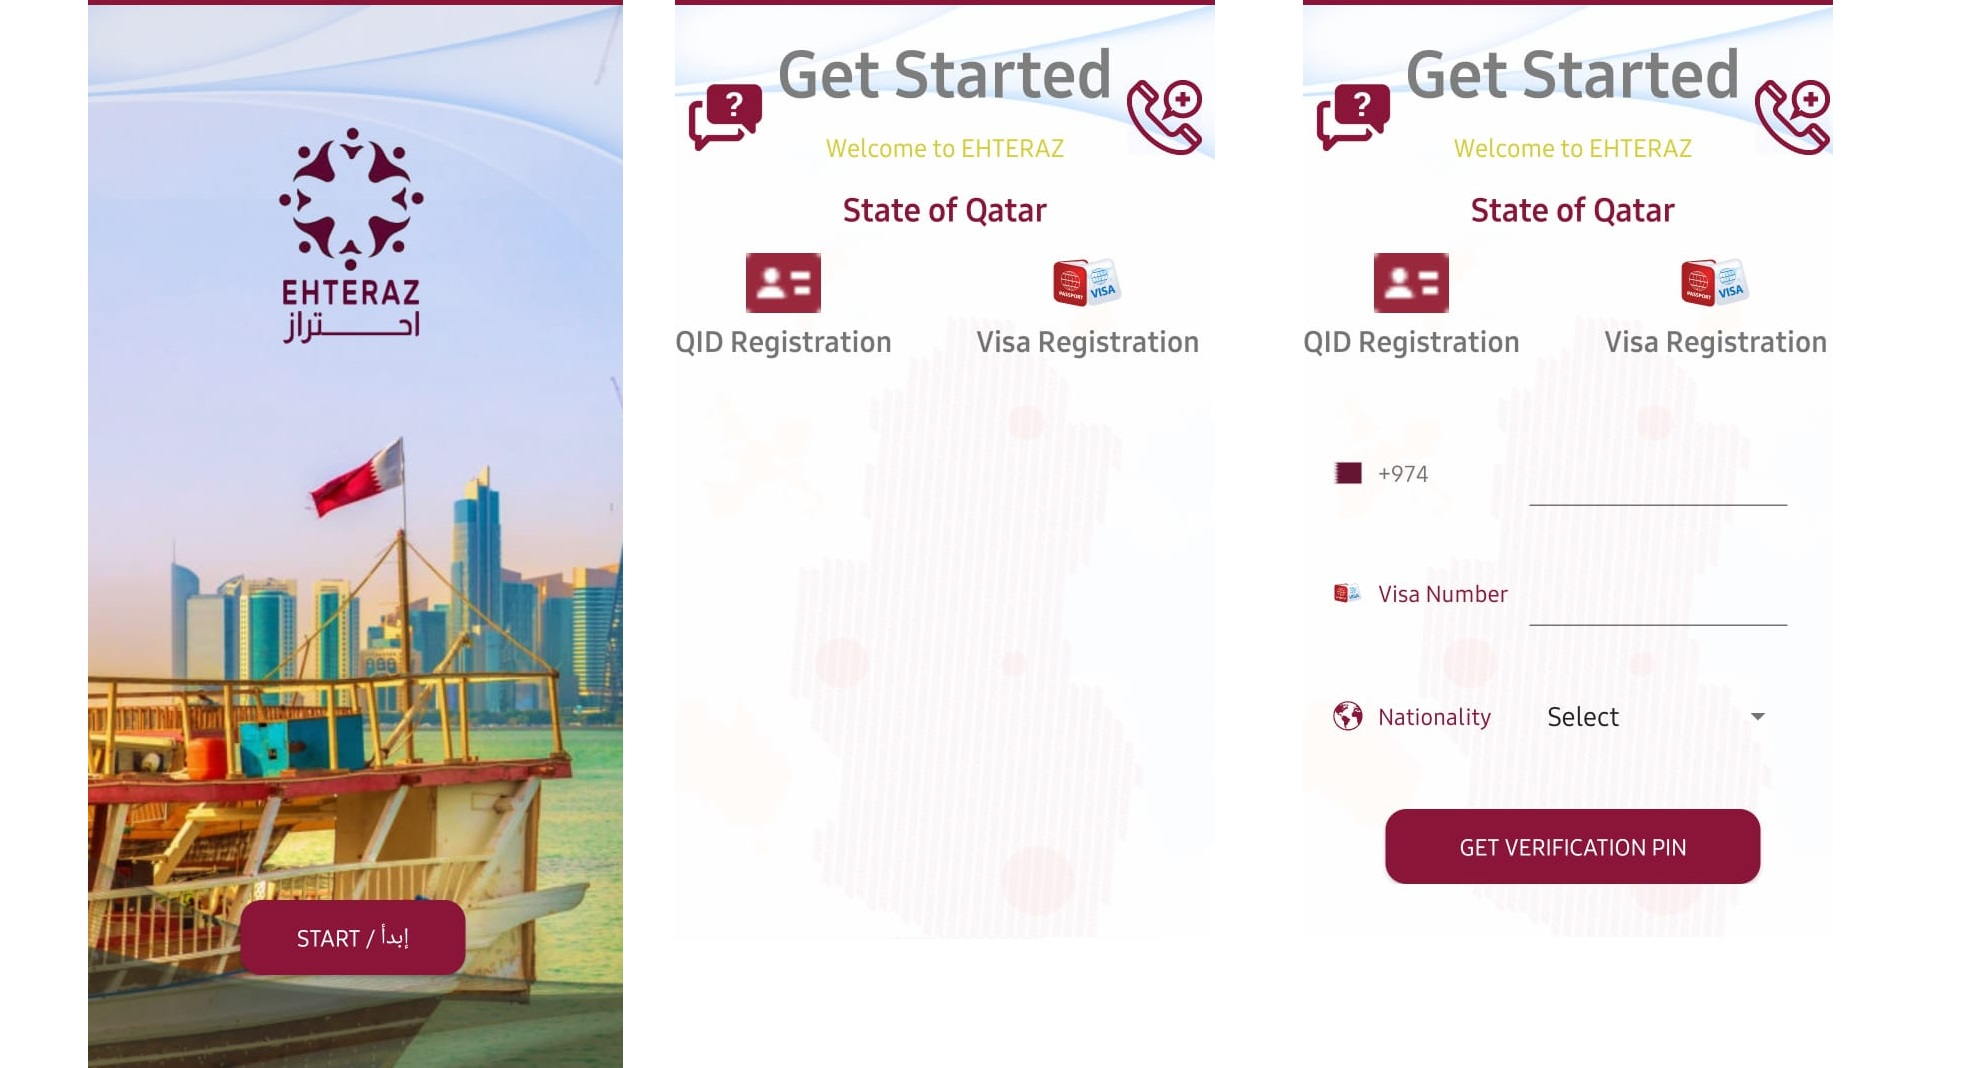 Non-QID holders were not able to register on this app as it required QID number to complete the registration. In a recent update on android version of EHTERAZ (on Google Play Store) it allows non-QID holders (Business and Other Visit Visa Holders) to register using Visa information instead of QID number.